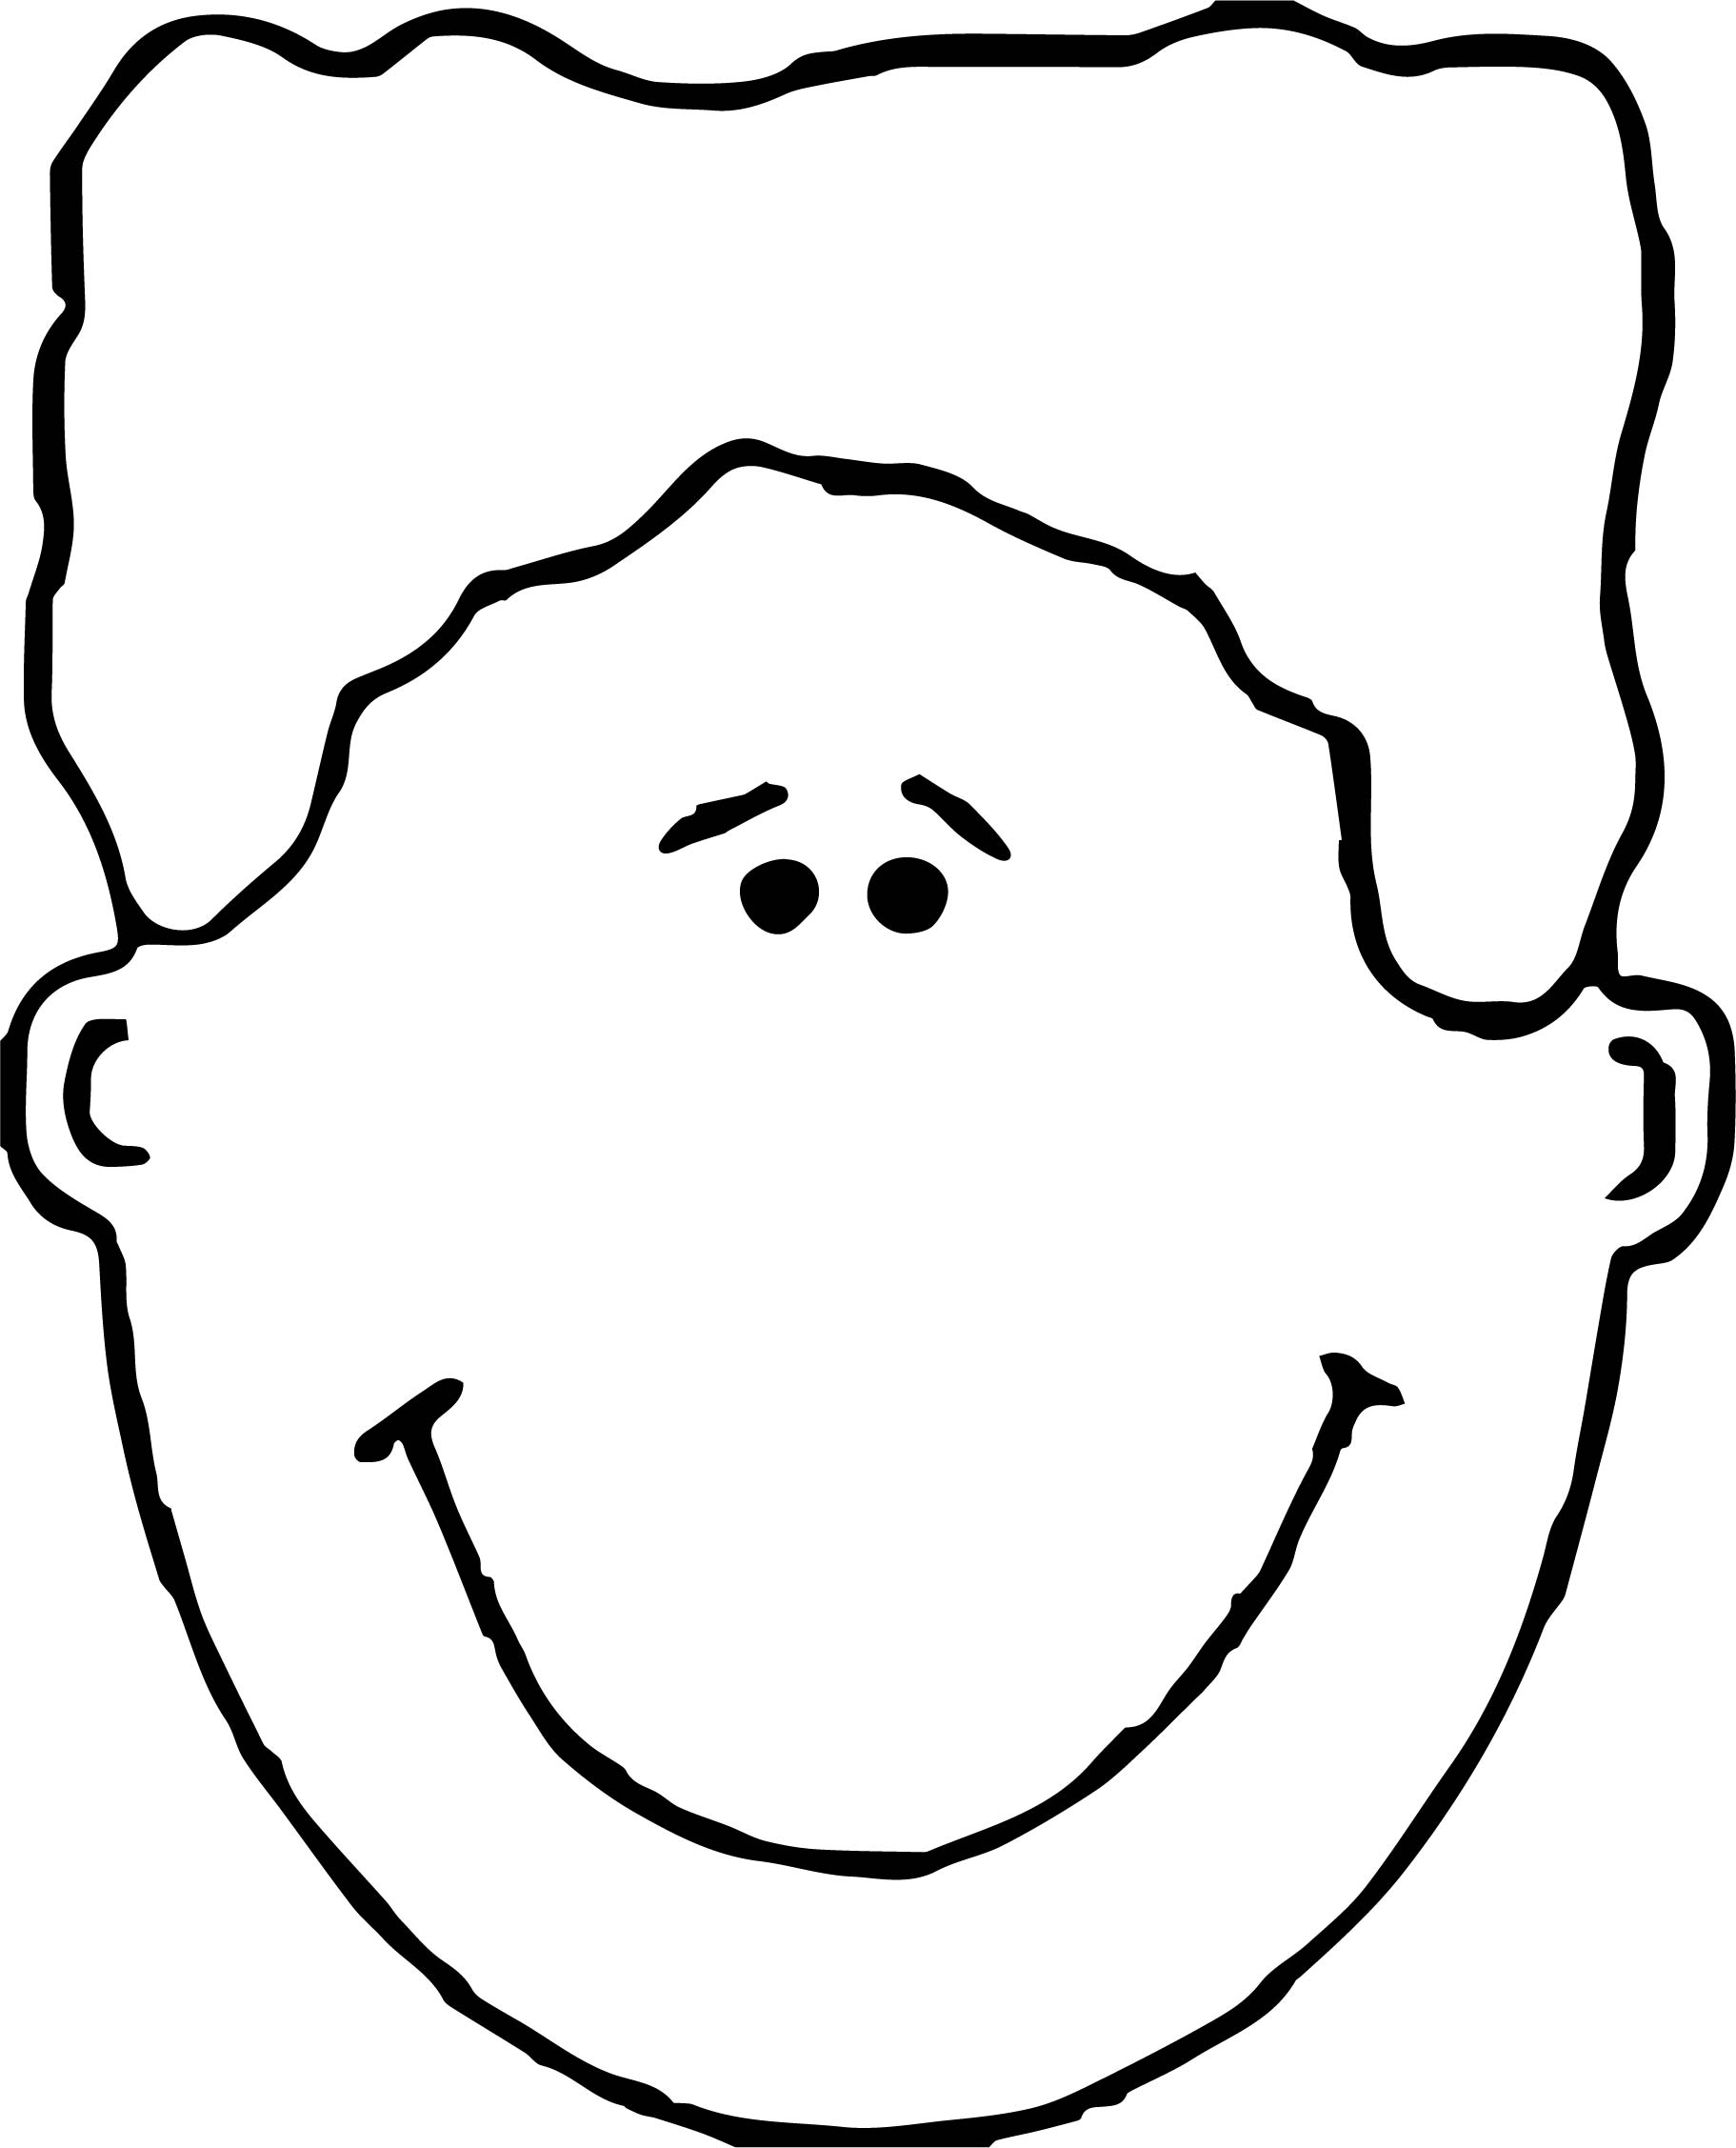 Face Images Coloring Page 02